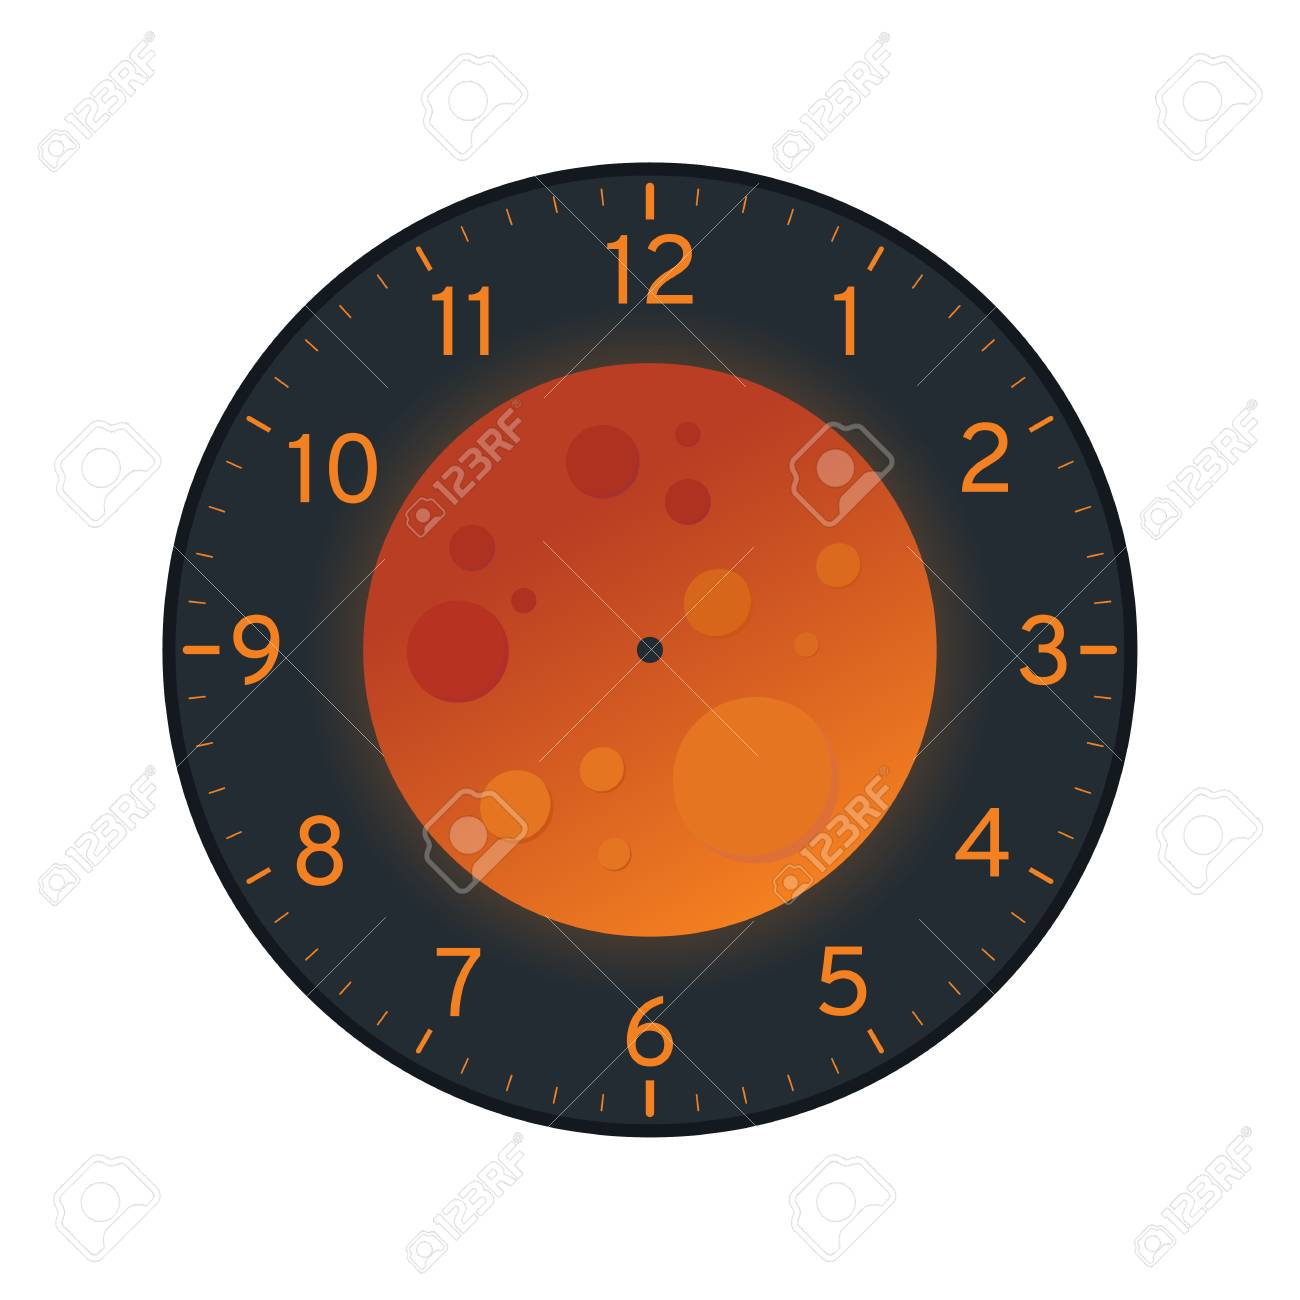 photo relating to Moon Printable called Blood Moon Printable Clock Experience Template Isolated upon White History